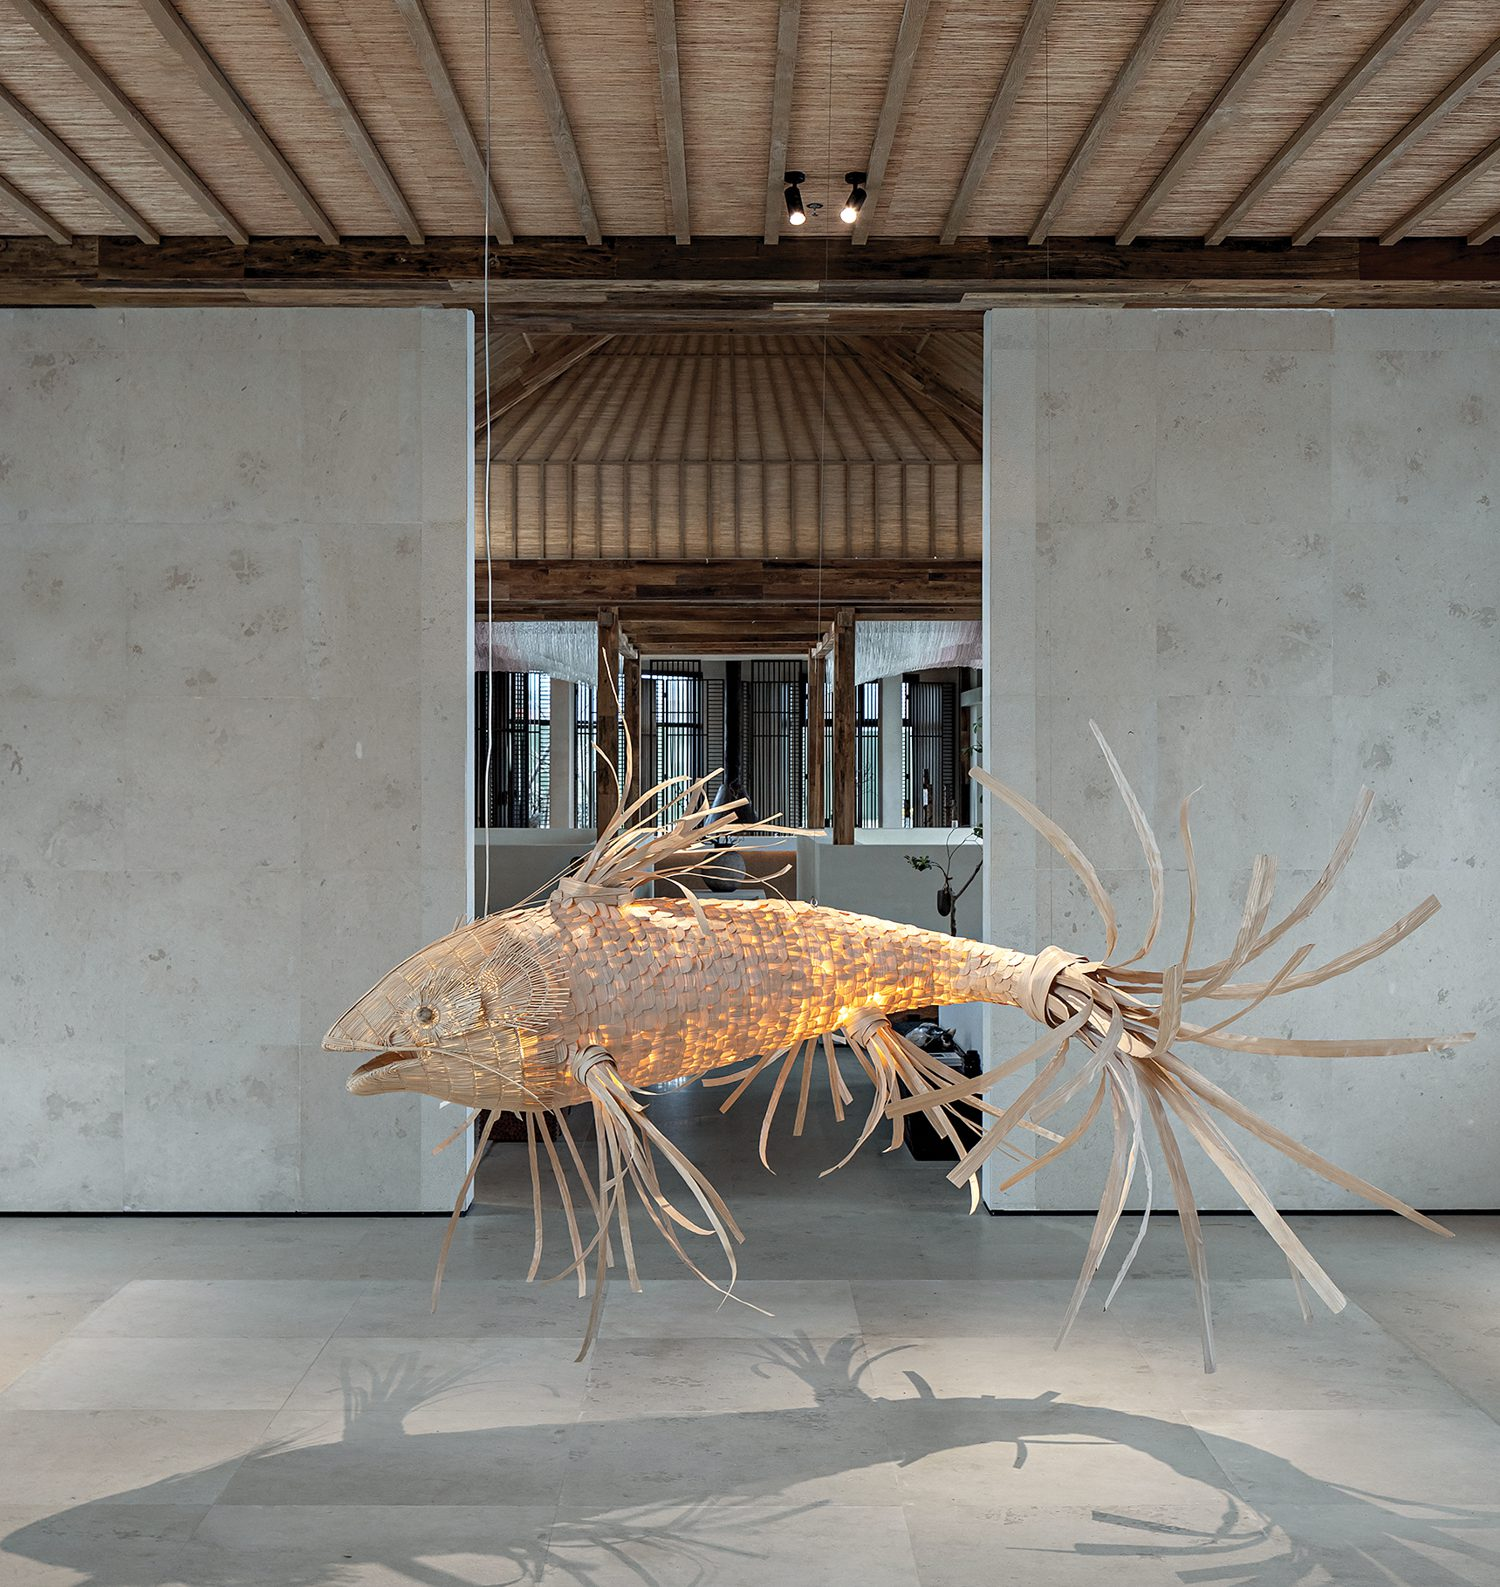 An immense floating fish, commissioned for the project and crafted of woven bamboo, nods to the idea while also being an auspicious omen in Chinese culture.